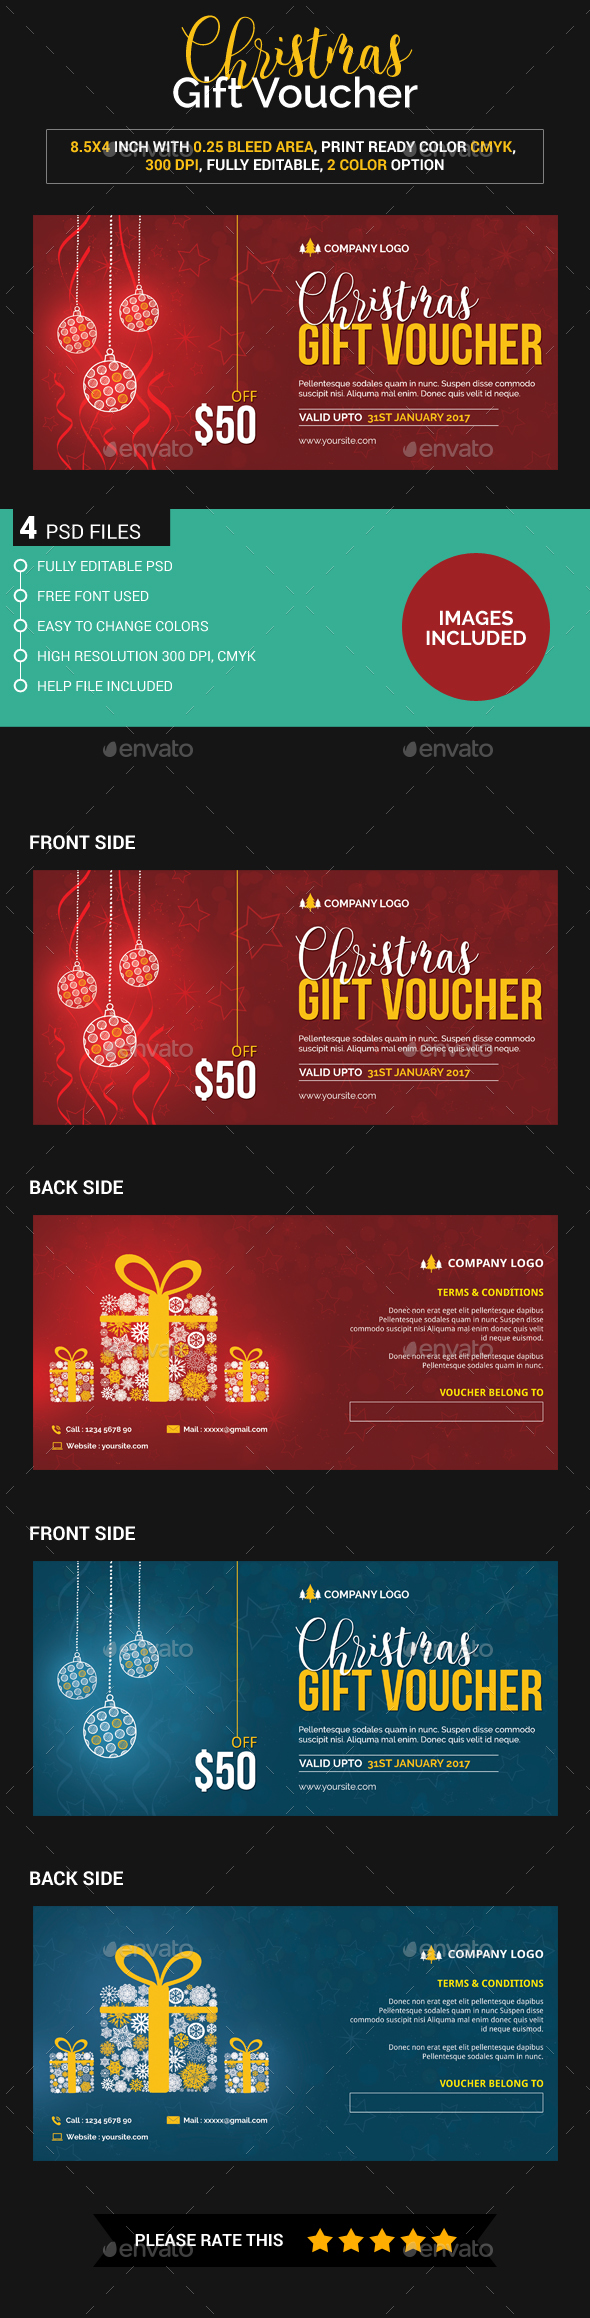 Christmas gift voucher (Images Included) - Loyalty Cards Cards & Invites